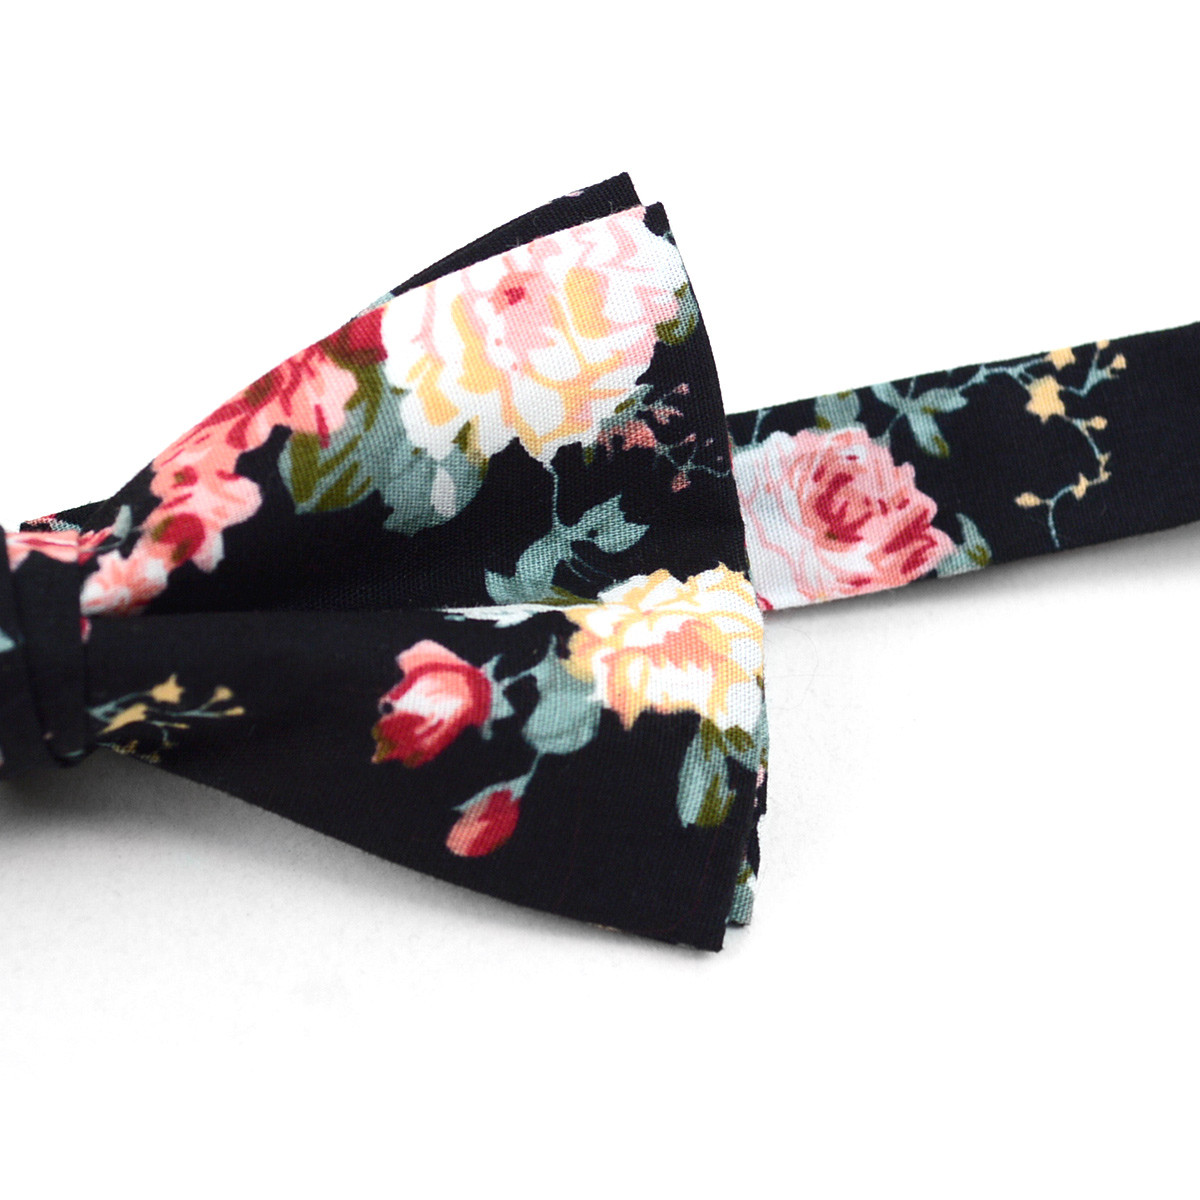 3pc Floral Wedding Cotton Banded Bow Tie - NFCB17127